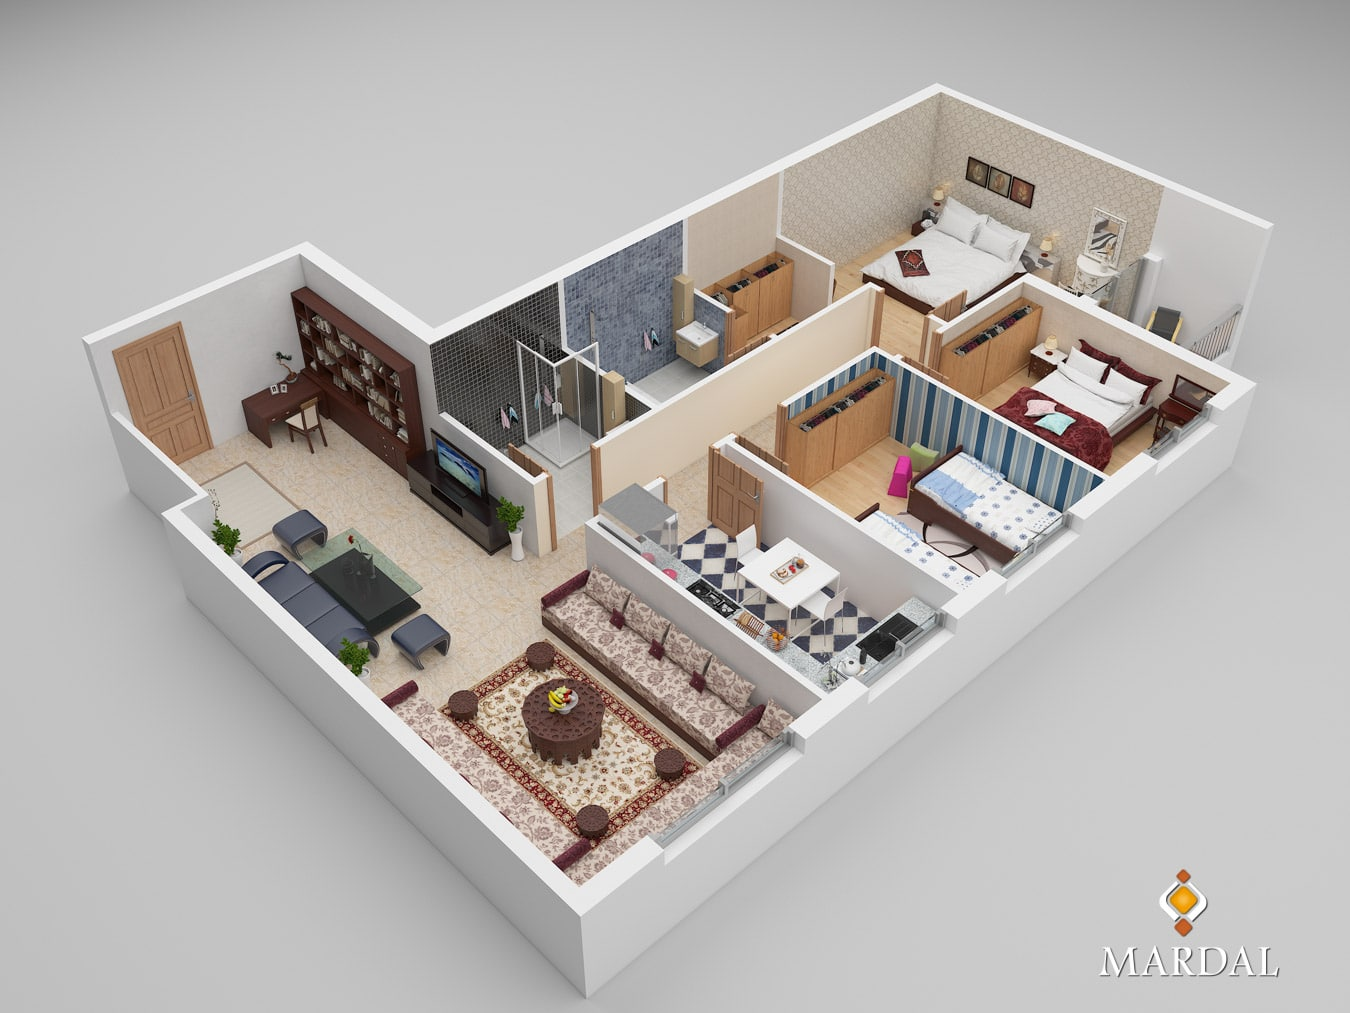 Apartment Overview Cutted - 3D Modeling, Visualization and Interactive Apps - Copyright Mardal S.A.R.L.